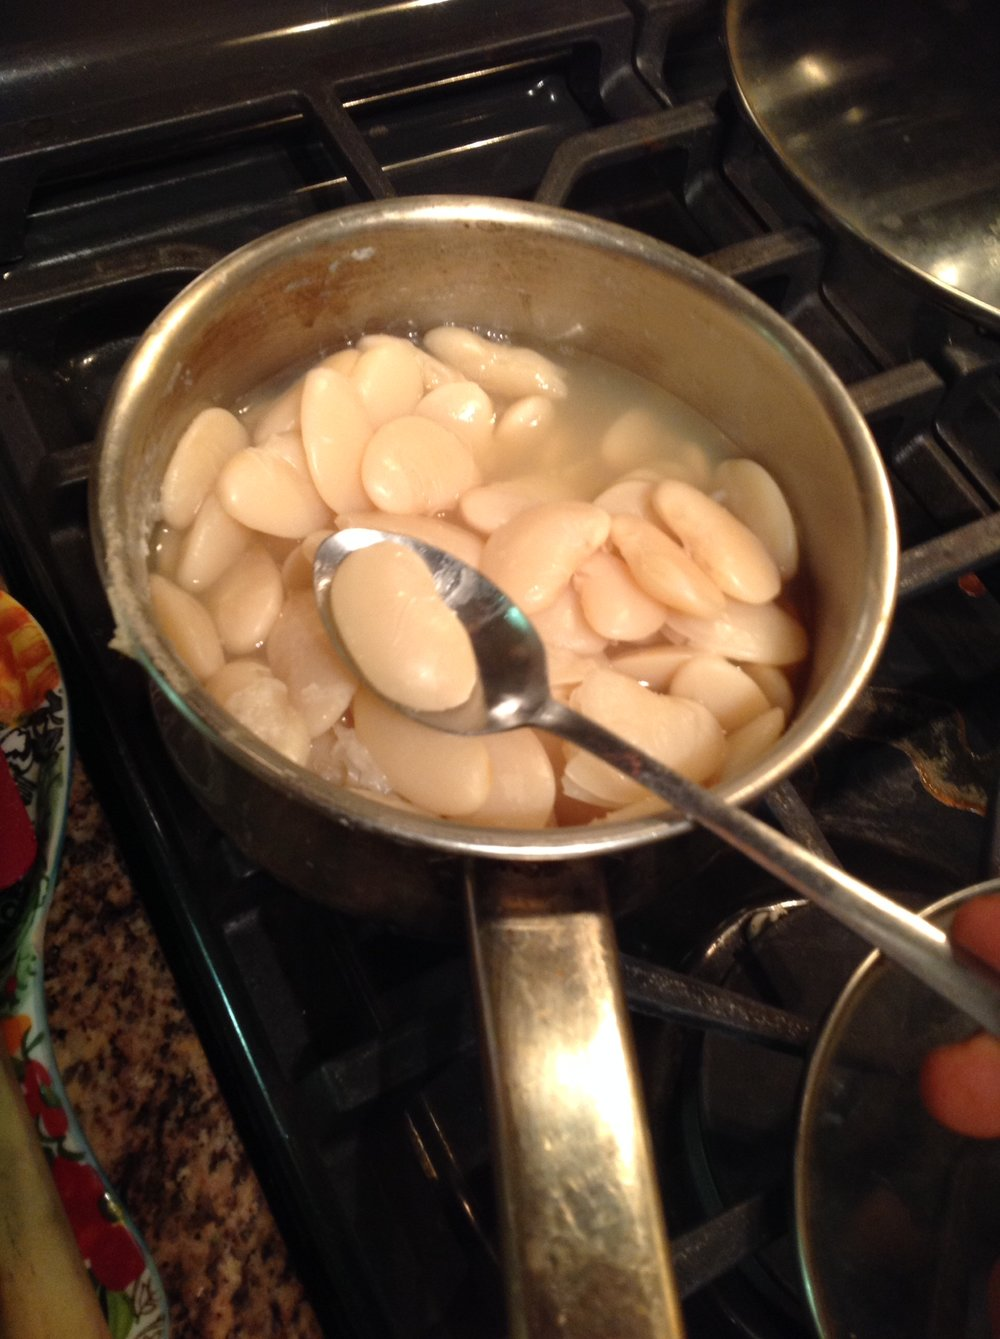 Chef's Plant-Based Cooking Tip: The giant lima beans are ready when tender and just starting to fall apart.  Taste one to check that it's done.  You don't want crunchy beans!